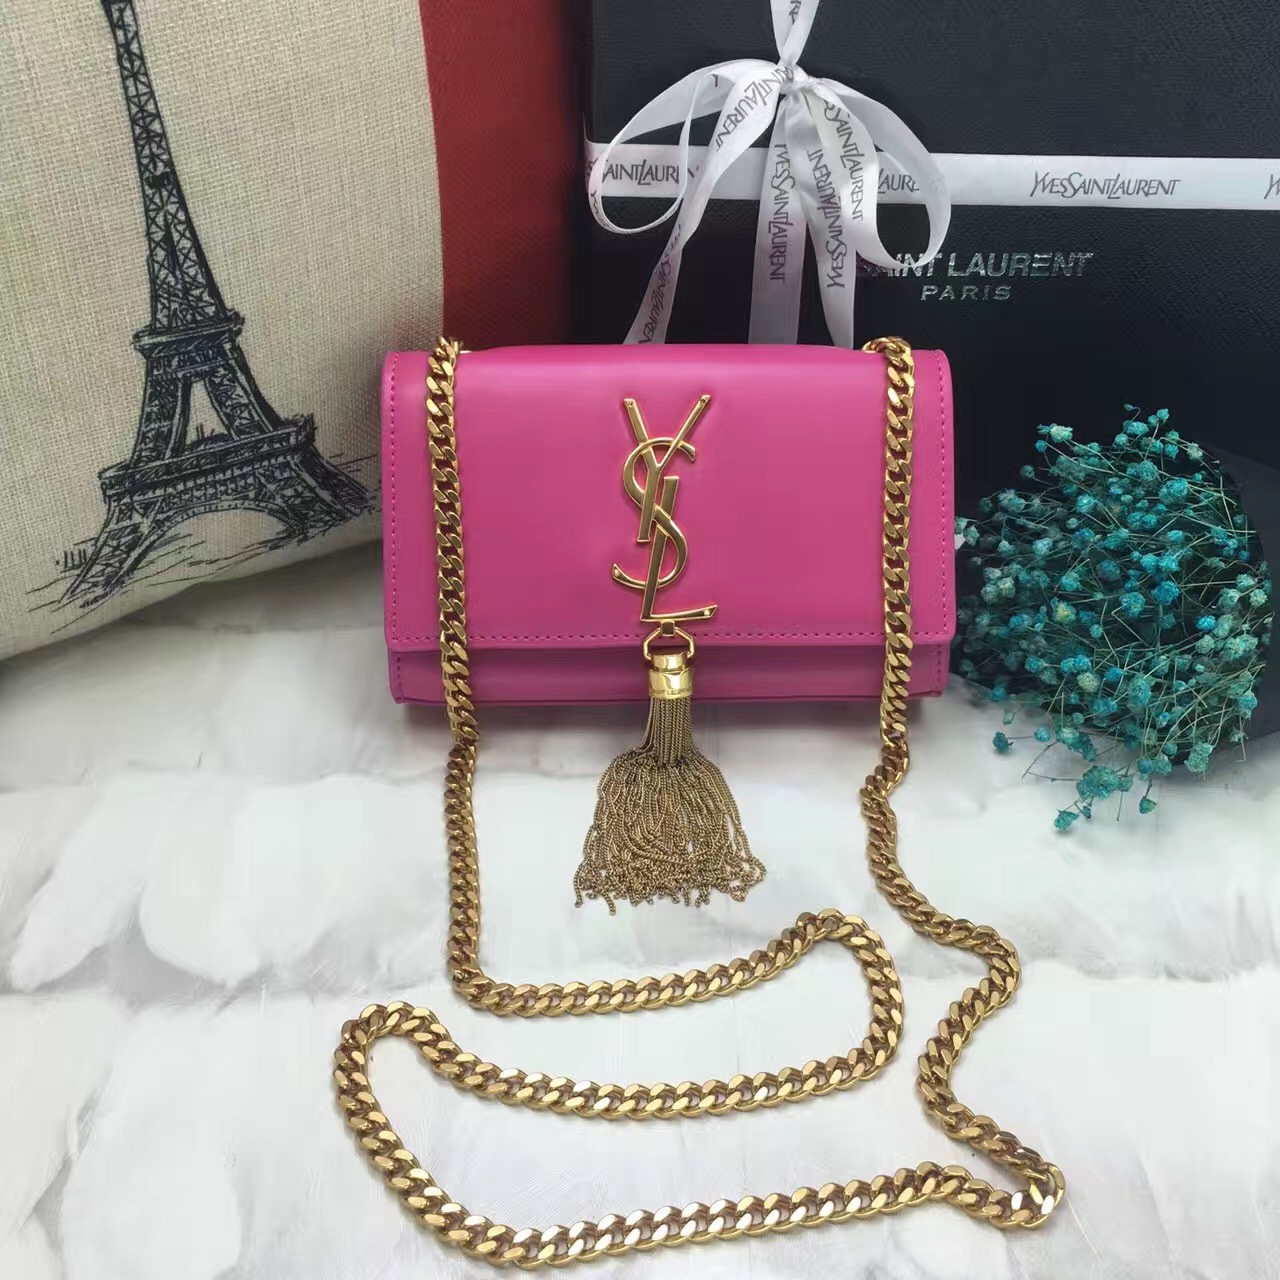 YSL Small Tassel Chain Leather Bag 17cm Hot Pink